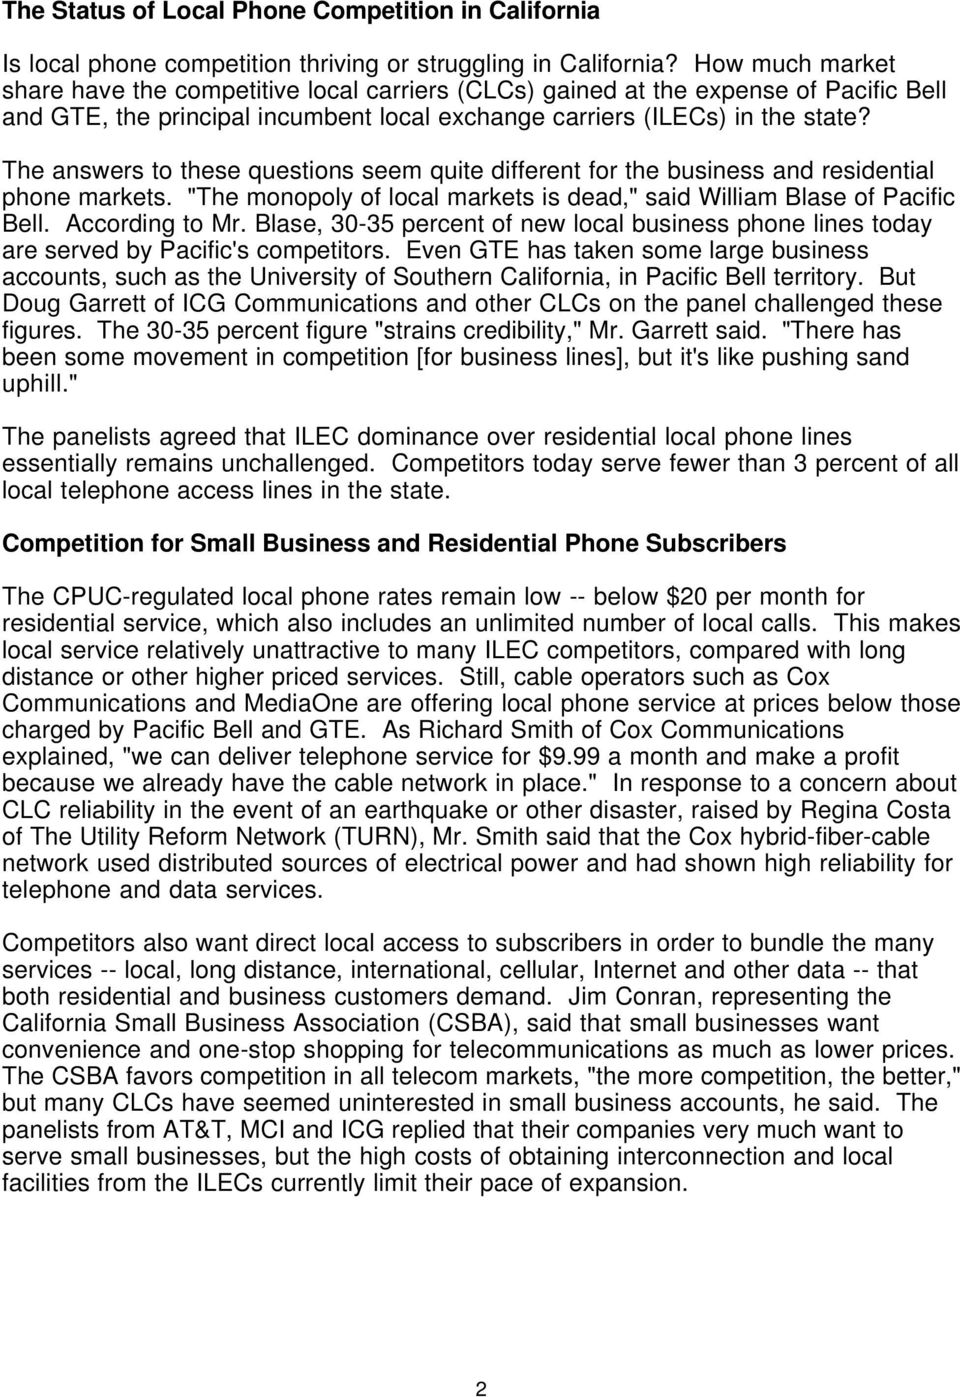 "The answers to these questions seem quite different for the business and residential phone markets. ""The monopoly of local markets is dead,"" said William Blase of Pacific Bell. According to Mr."